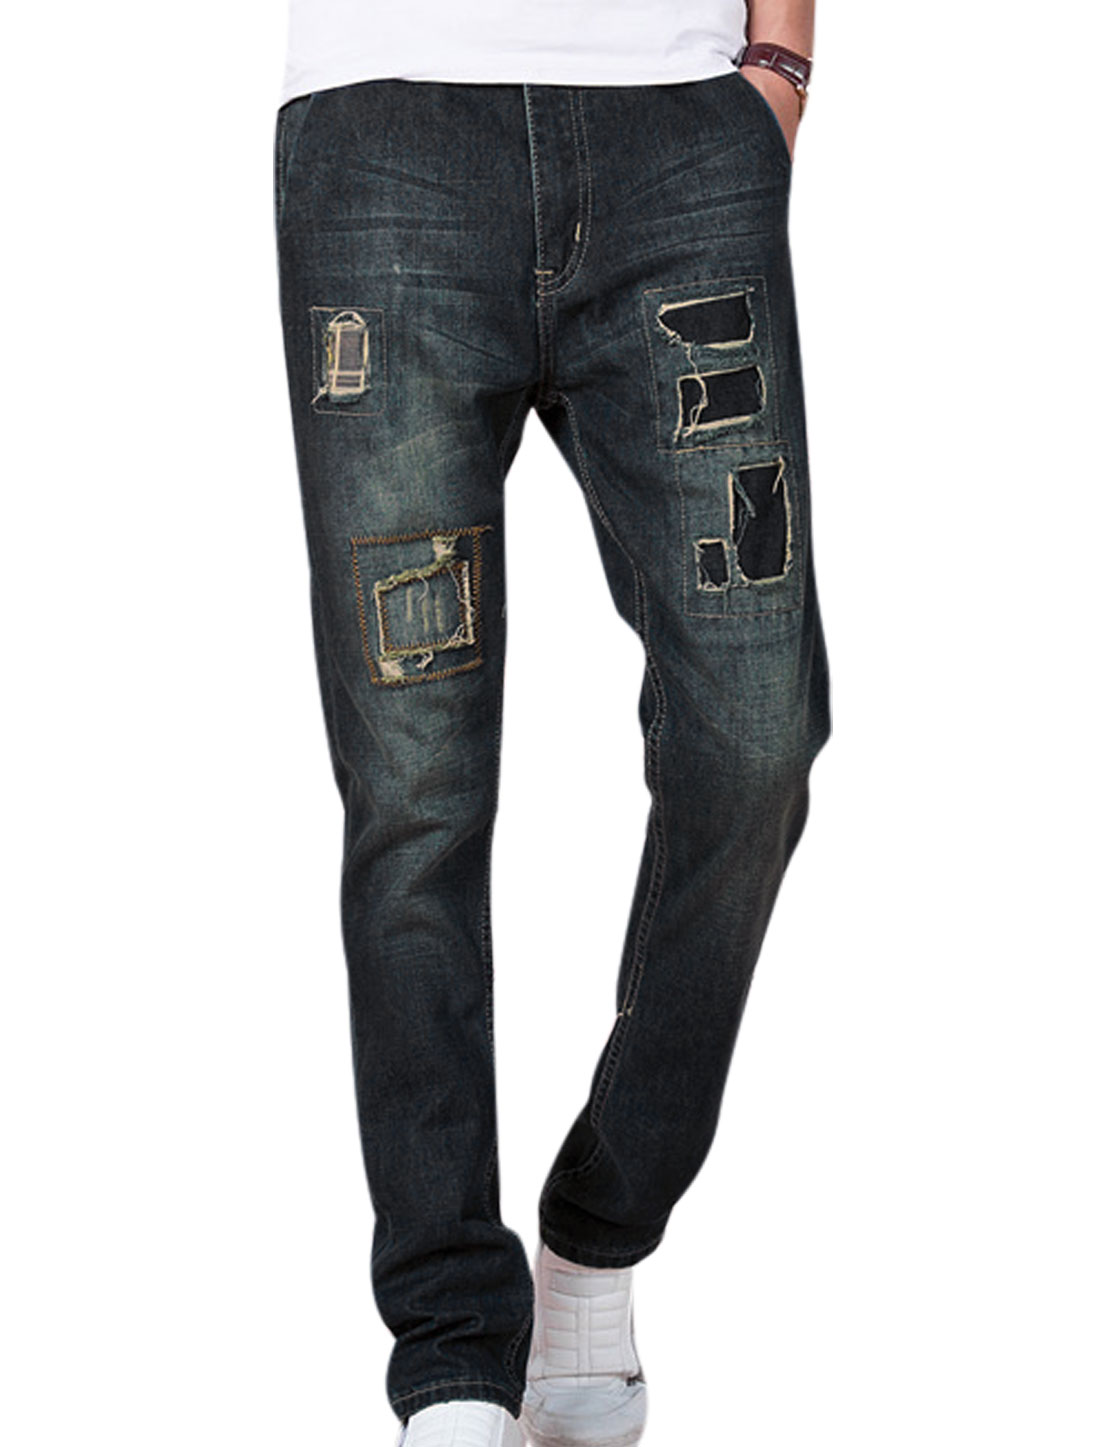 Natural Waist Destroyed Design Trendy Jeans for Men Navy Blue W32